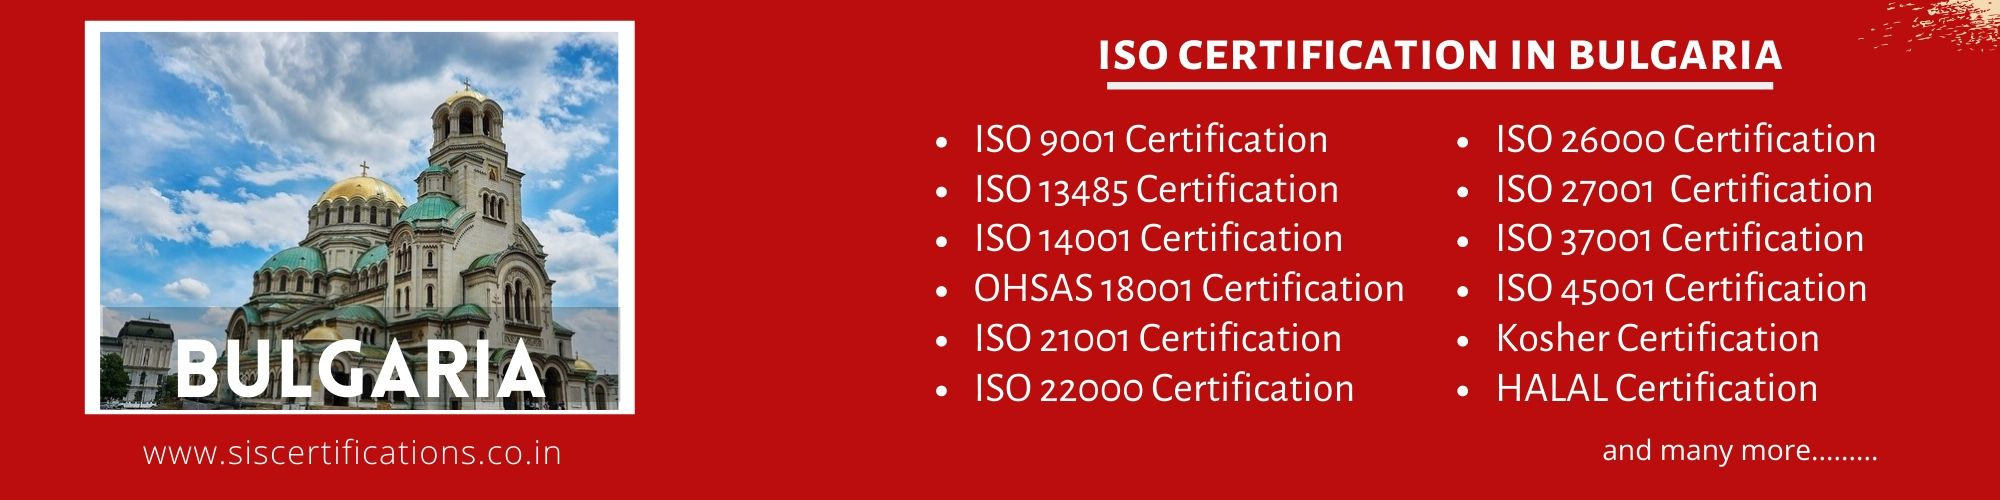 ISO Certification in Bulgaria;ISO 9001 Certification in Bulgaria;